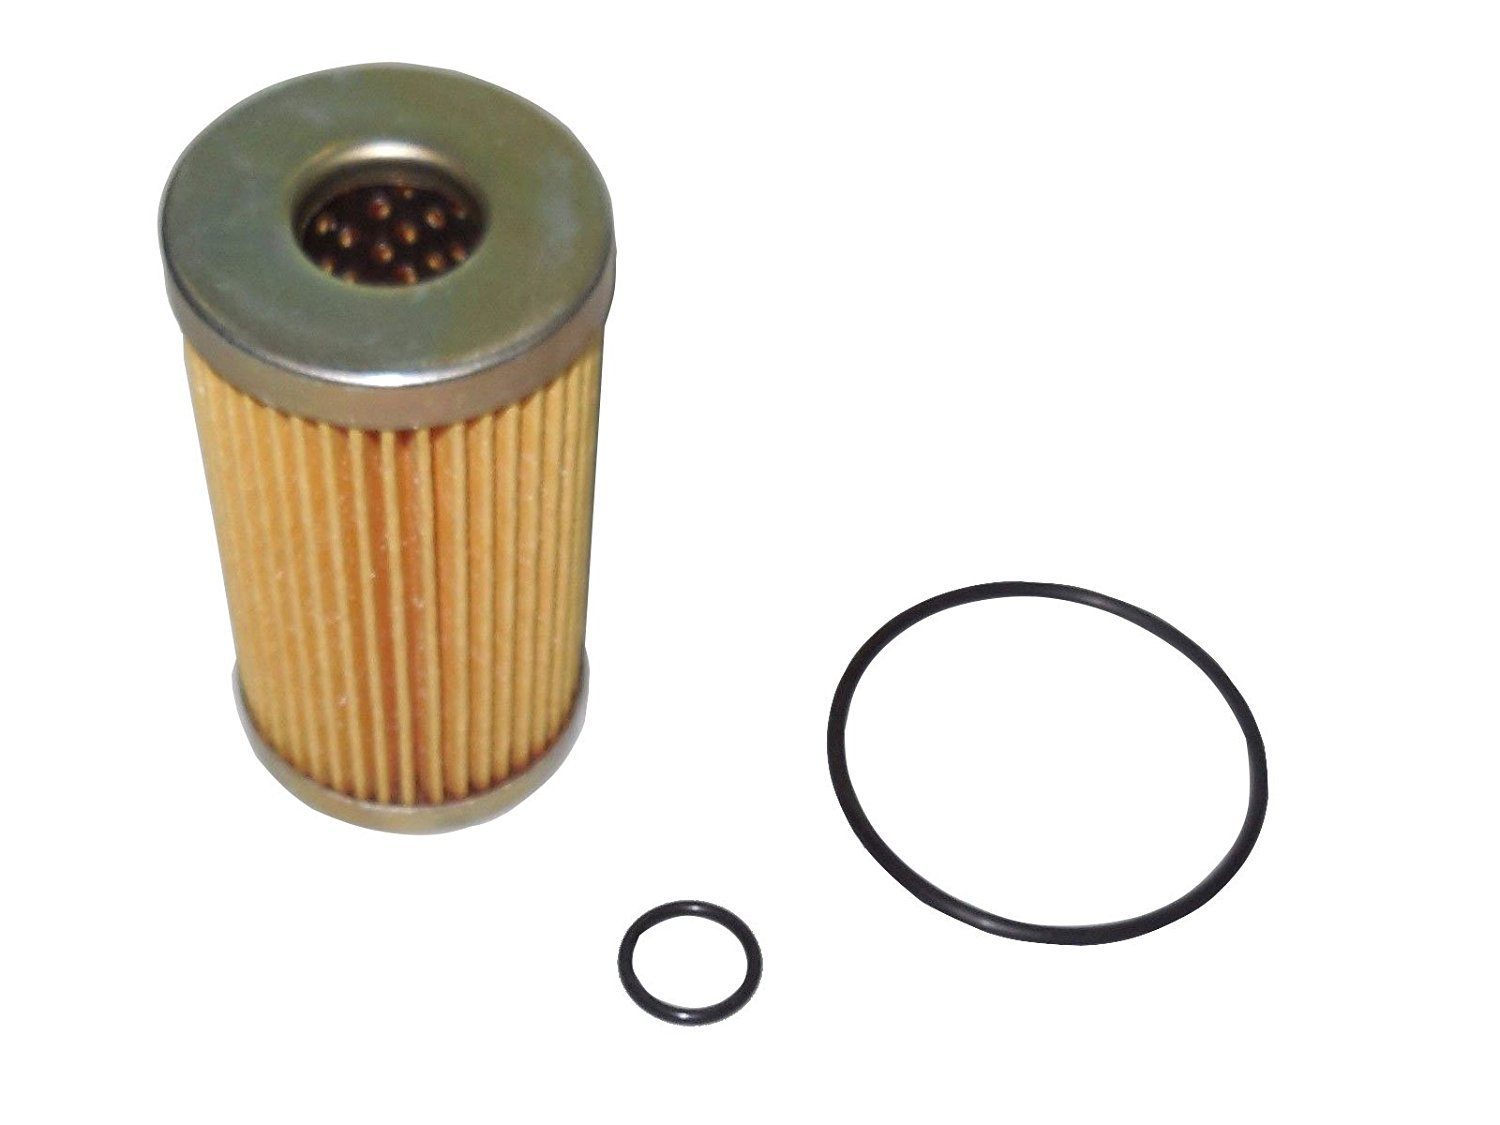 New Kubota Fuel Filter With O Rings Mx4700 Mx5000 Mx5100 Location Automotive